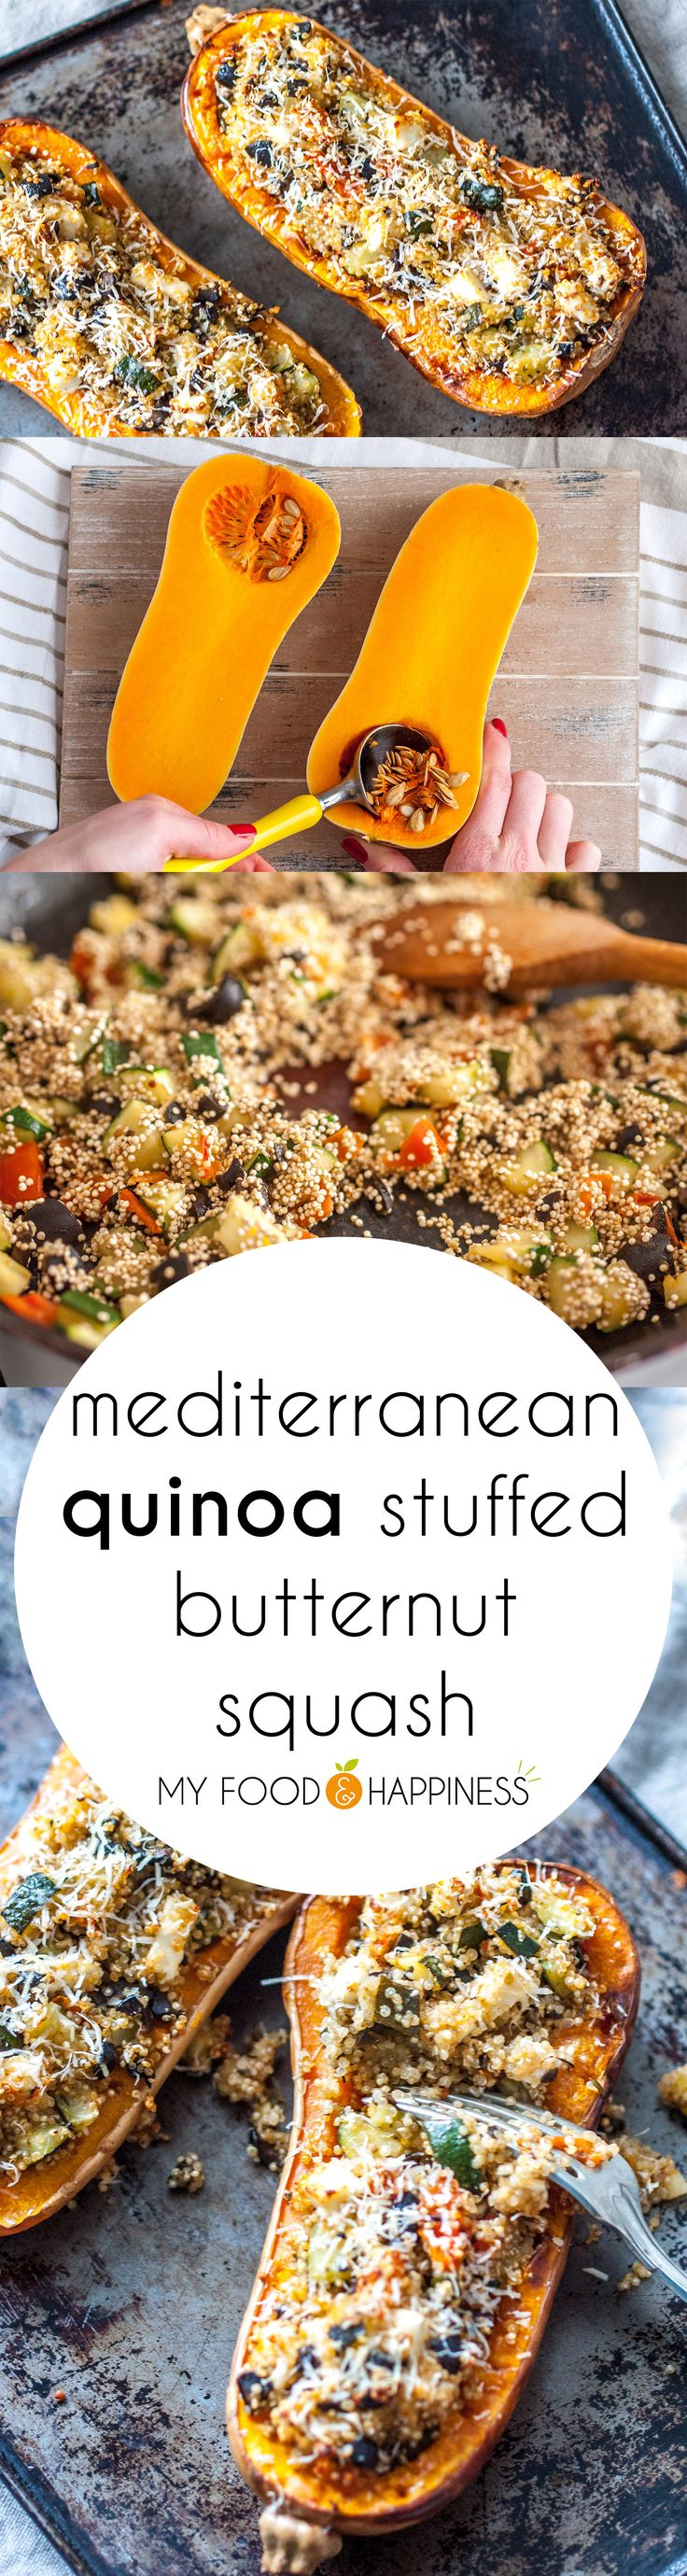 Delicious and healthy Mediterranean Quinoa stuffed butternut squash recipe. Easy and beautiful vegetarian & gluten-free meal that tastes amazing! Turn it into a vegan meal by skipping the cheese.